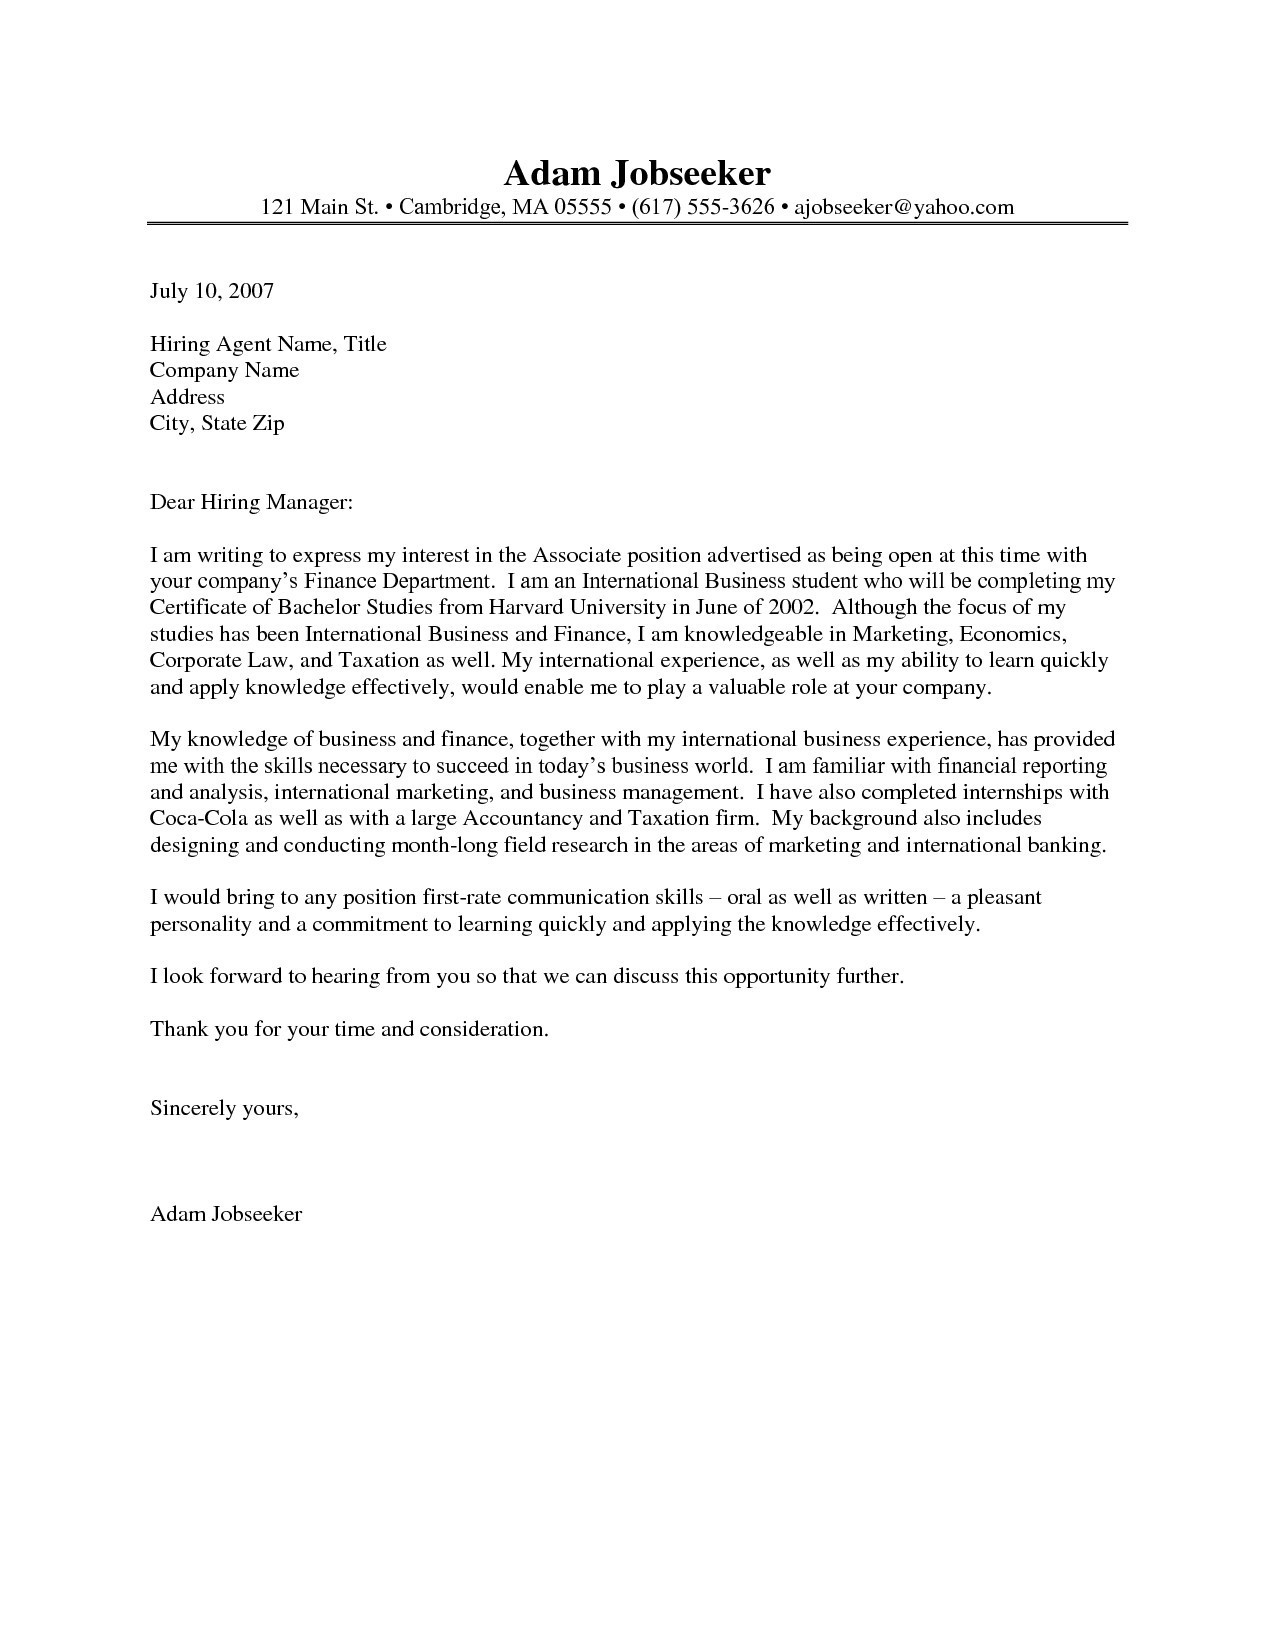 Internship Cover Letter Template - Sample Cover Letter for State Job Best Cover Letter Examples for